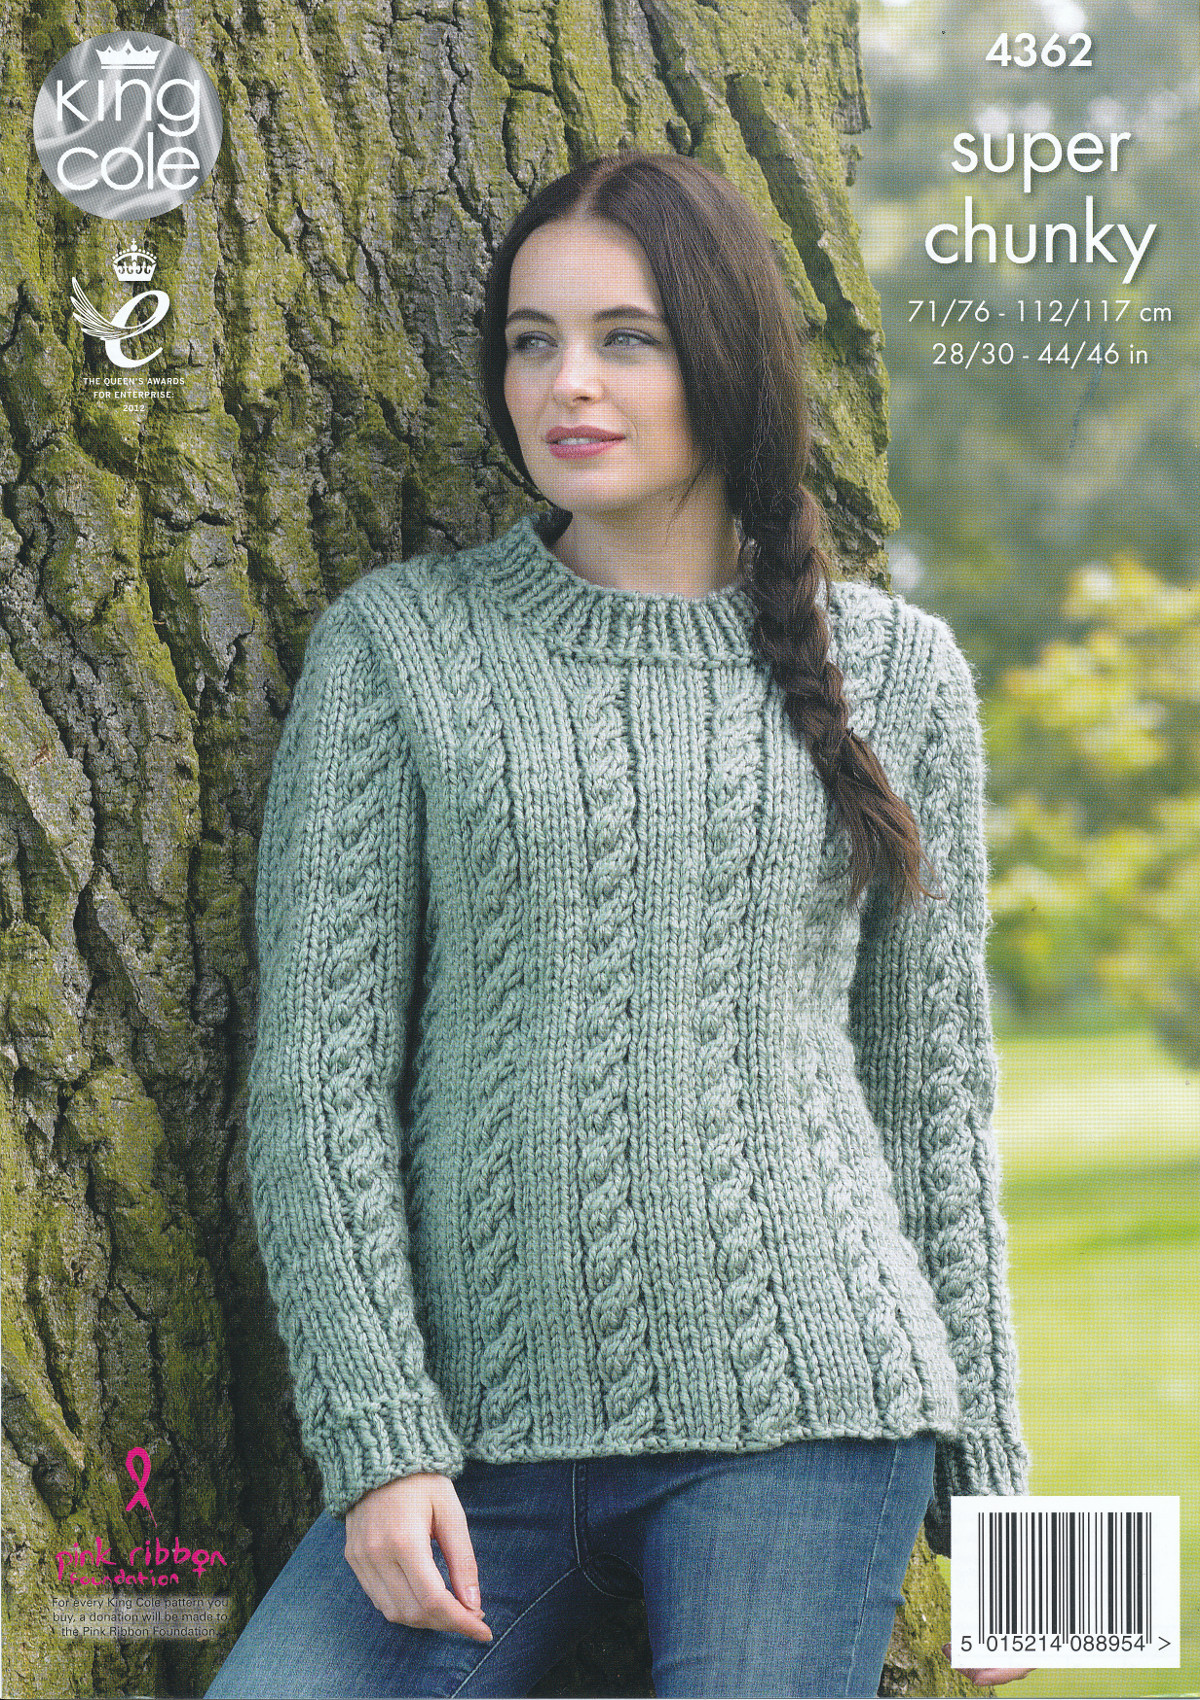 Beautiful La S Super Chunky Knitting Pattern King Cole Cable Knit Super Chunky Yarn Patterns Of Delightful 42 Ideas Super Chunky Yarn Patterns